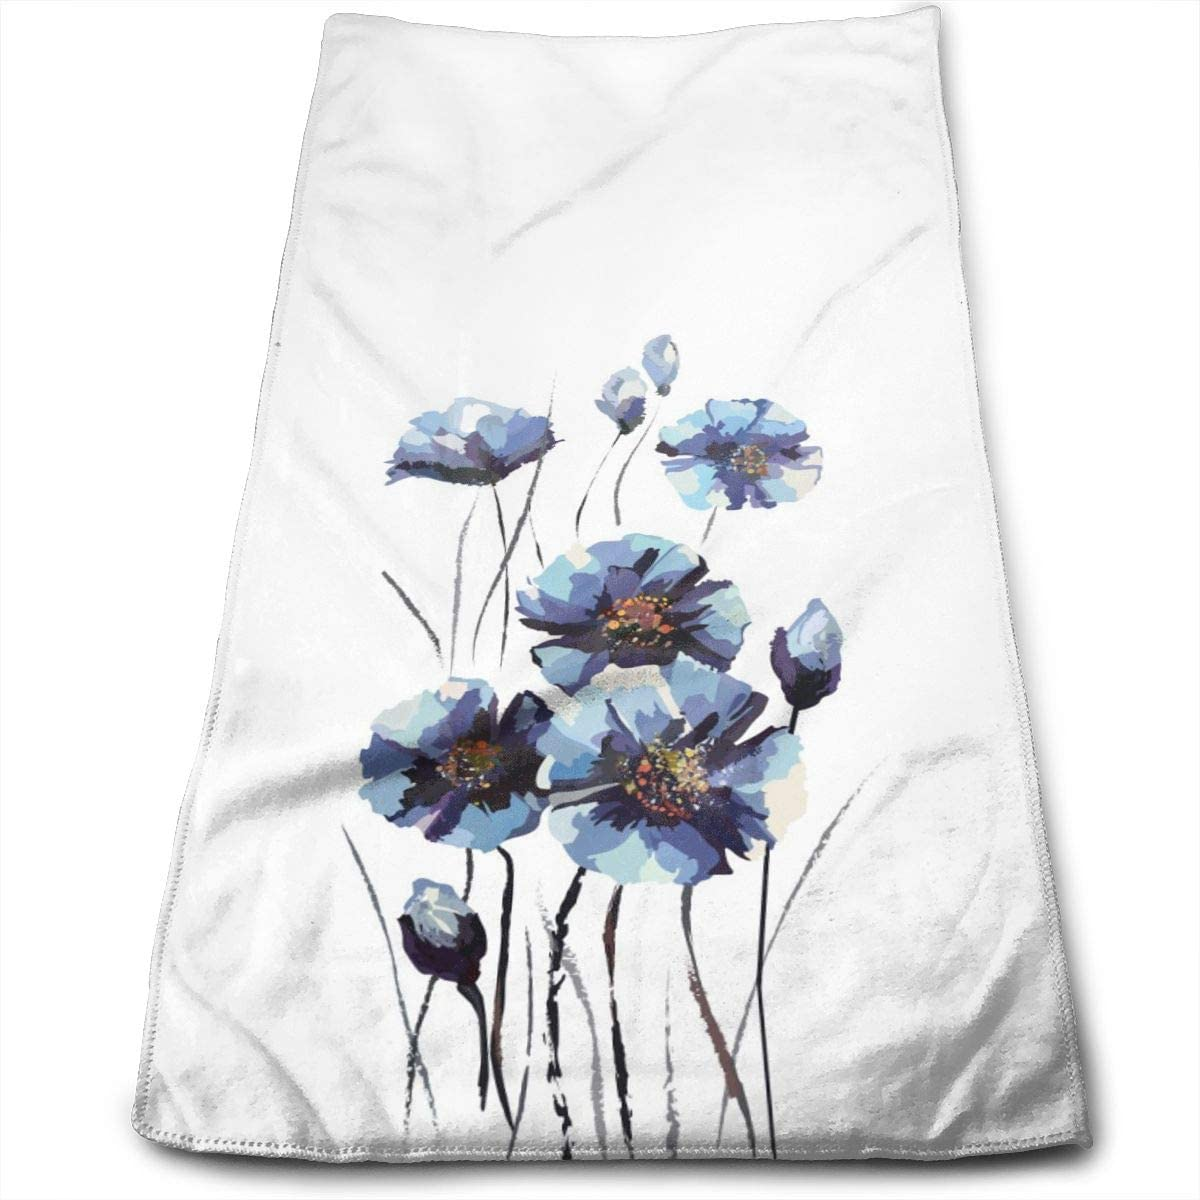 White Hydrangeas Blue Butterfly Hand Towels For Bathroom 27 5 X 12 Soft Microfiber Towel Floral Flower Small Bath Towels Kitchen Dish Towel Home Kitchen